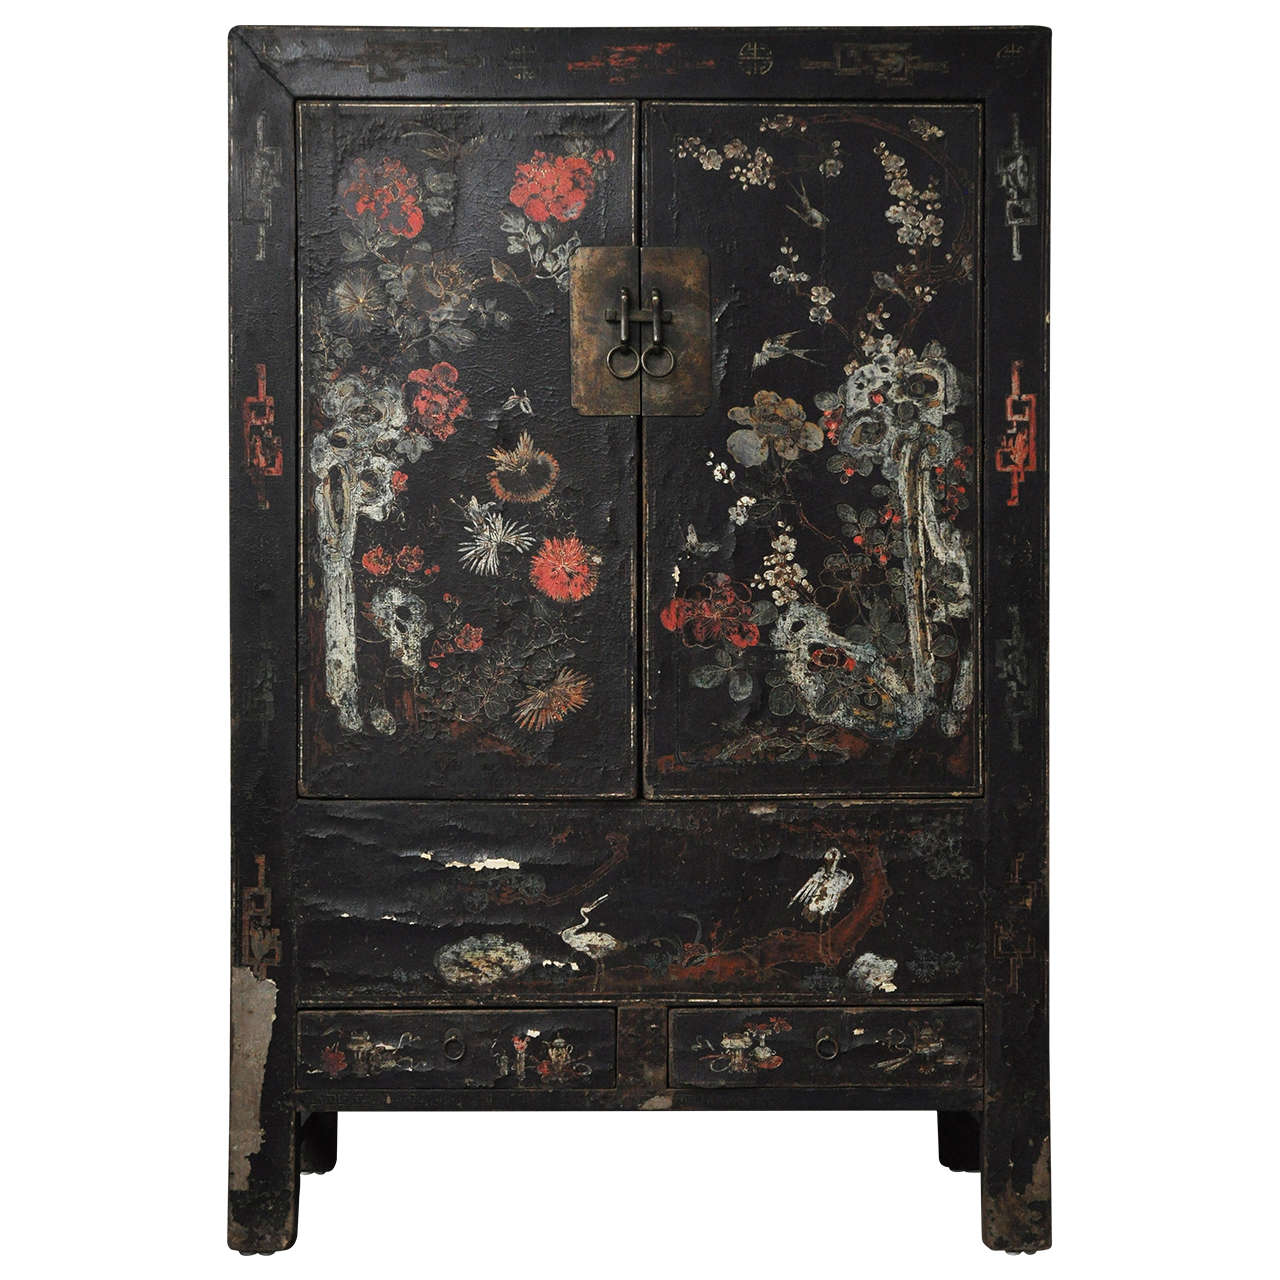 20th Century Chinese Black Lacquer Cabinet With Fl Design For